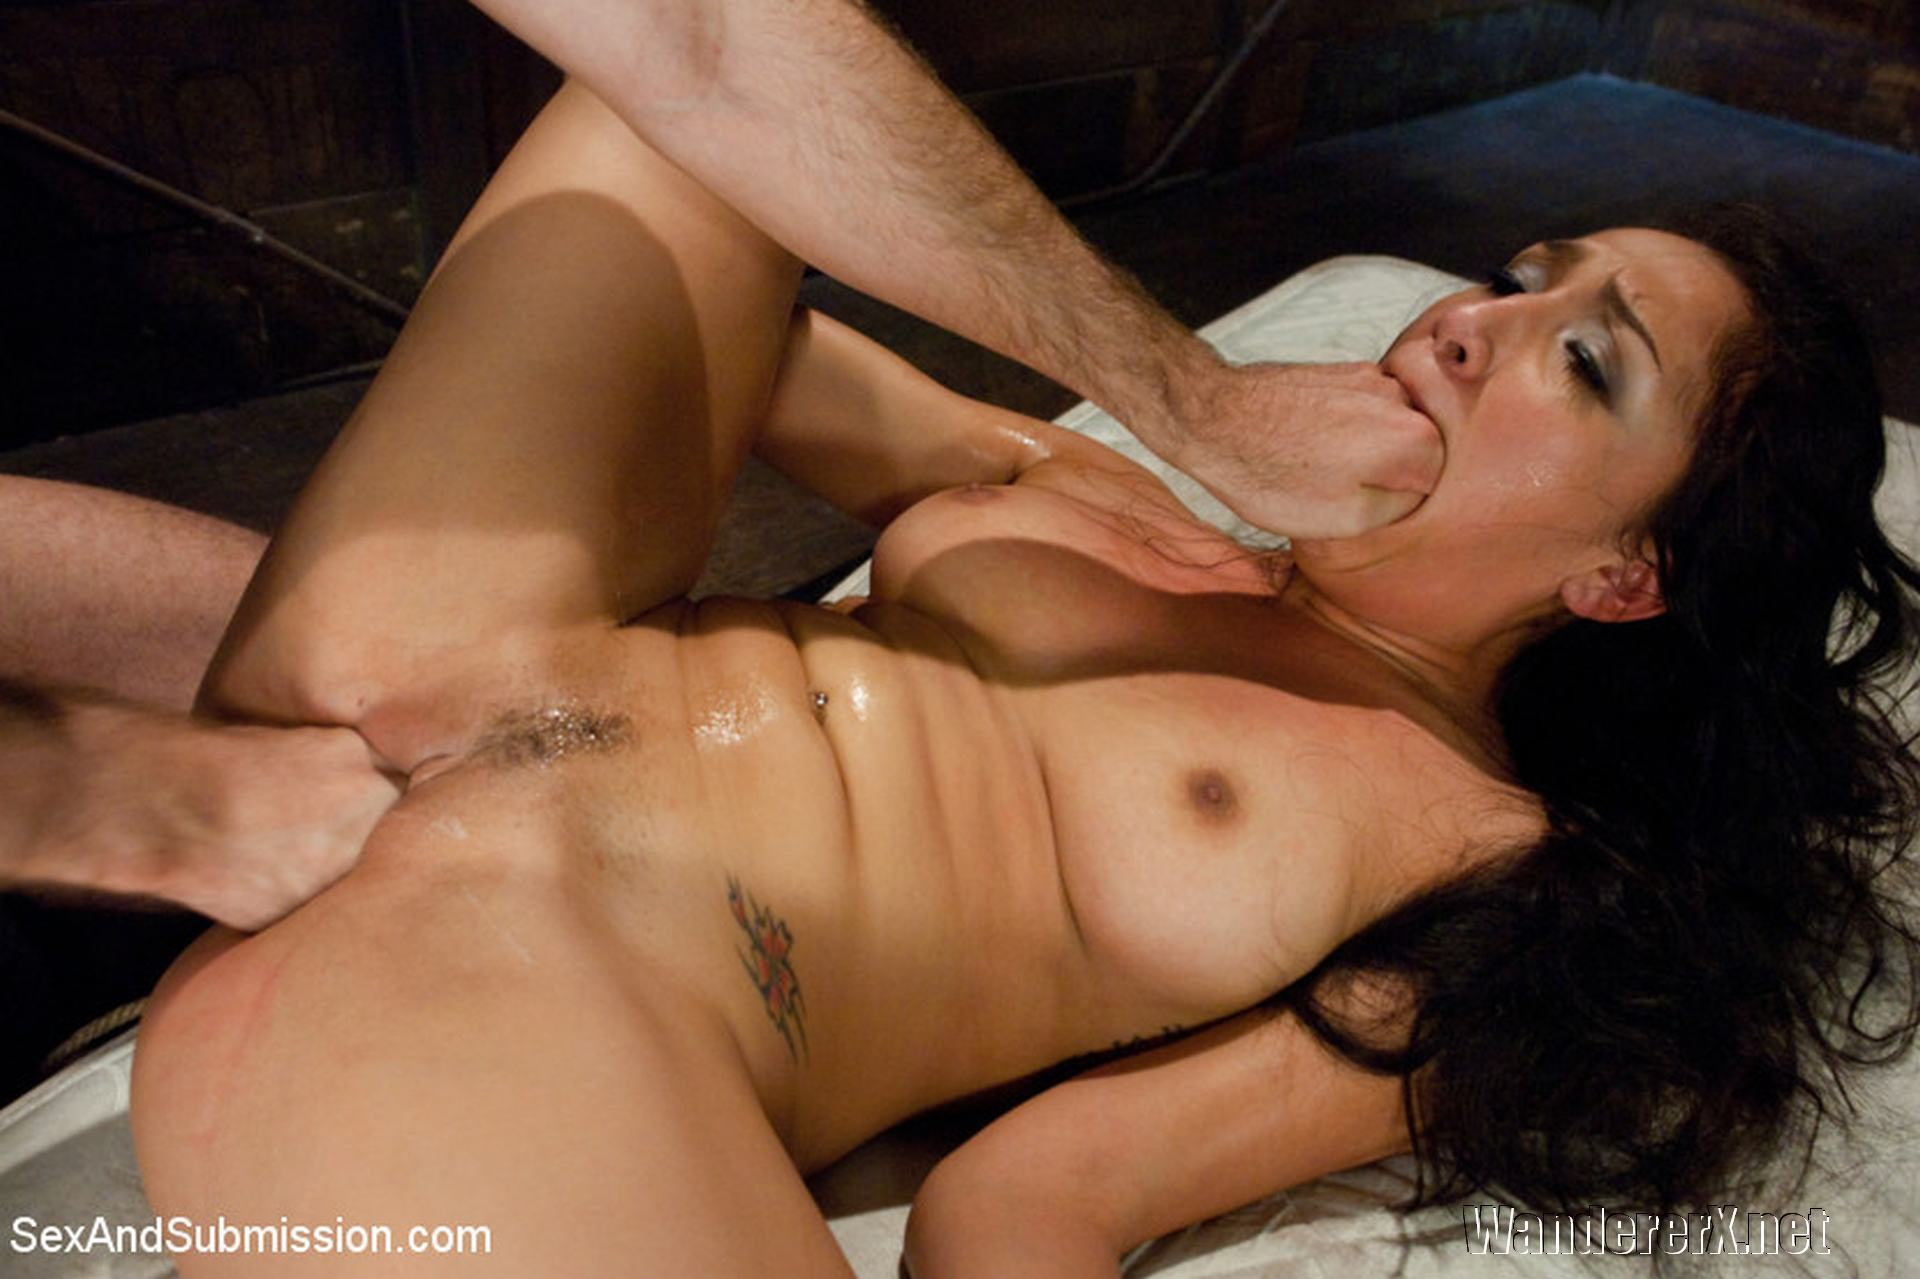 Vicki Chase, Sex and Submission - Vicki Chase's Submission, James Deen, Latina, petite, rough bondage sex, anal, oral, fisting, bondage sex, Sex and Submission, Bondage, domination, BDSM, rough sex, submissive, submissive female